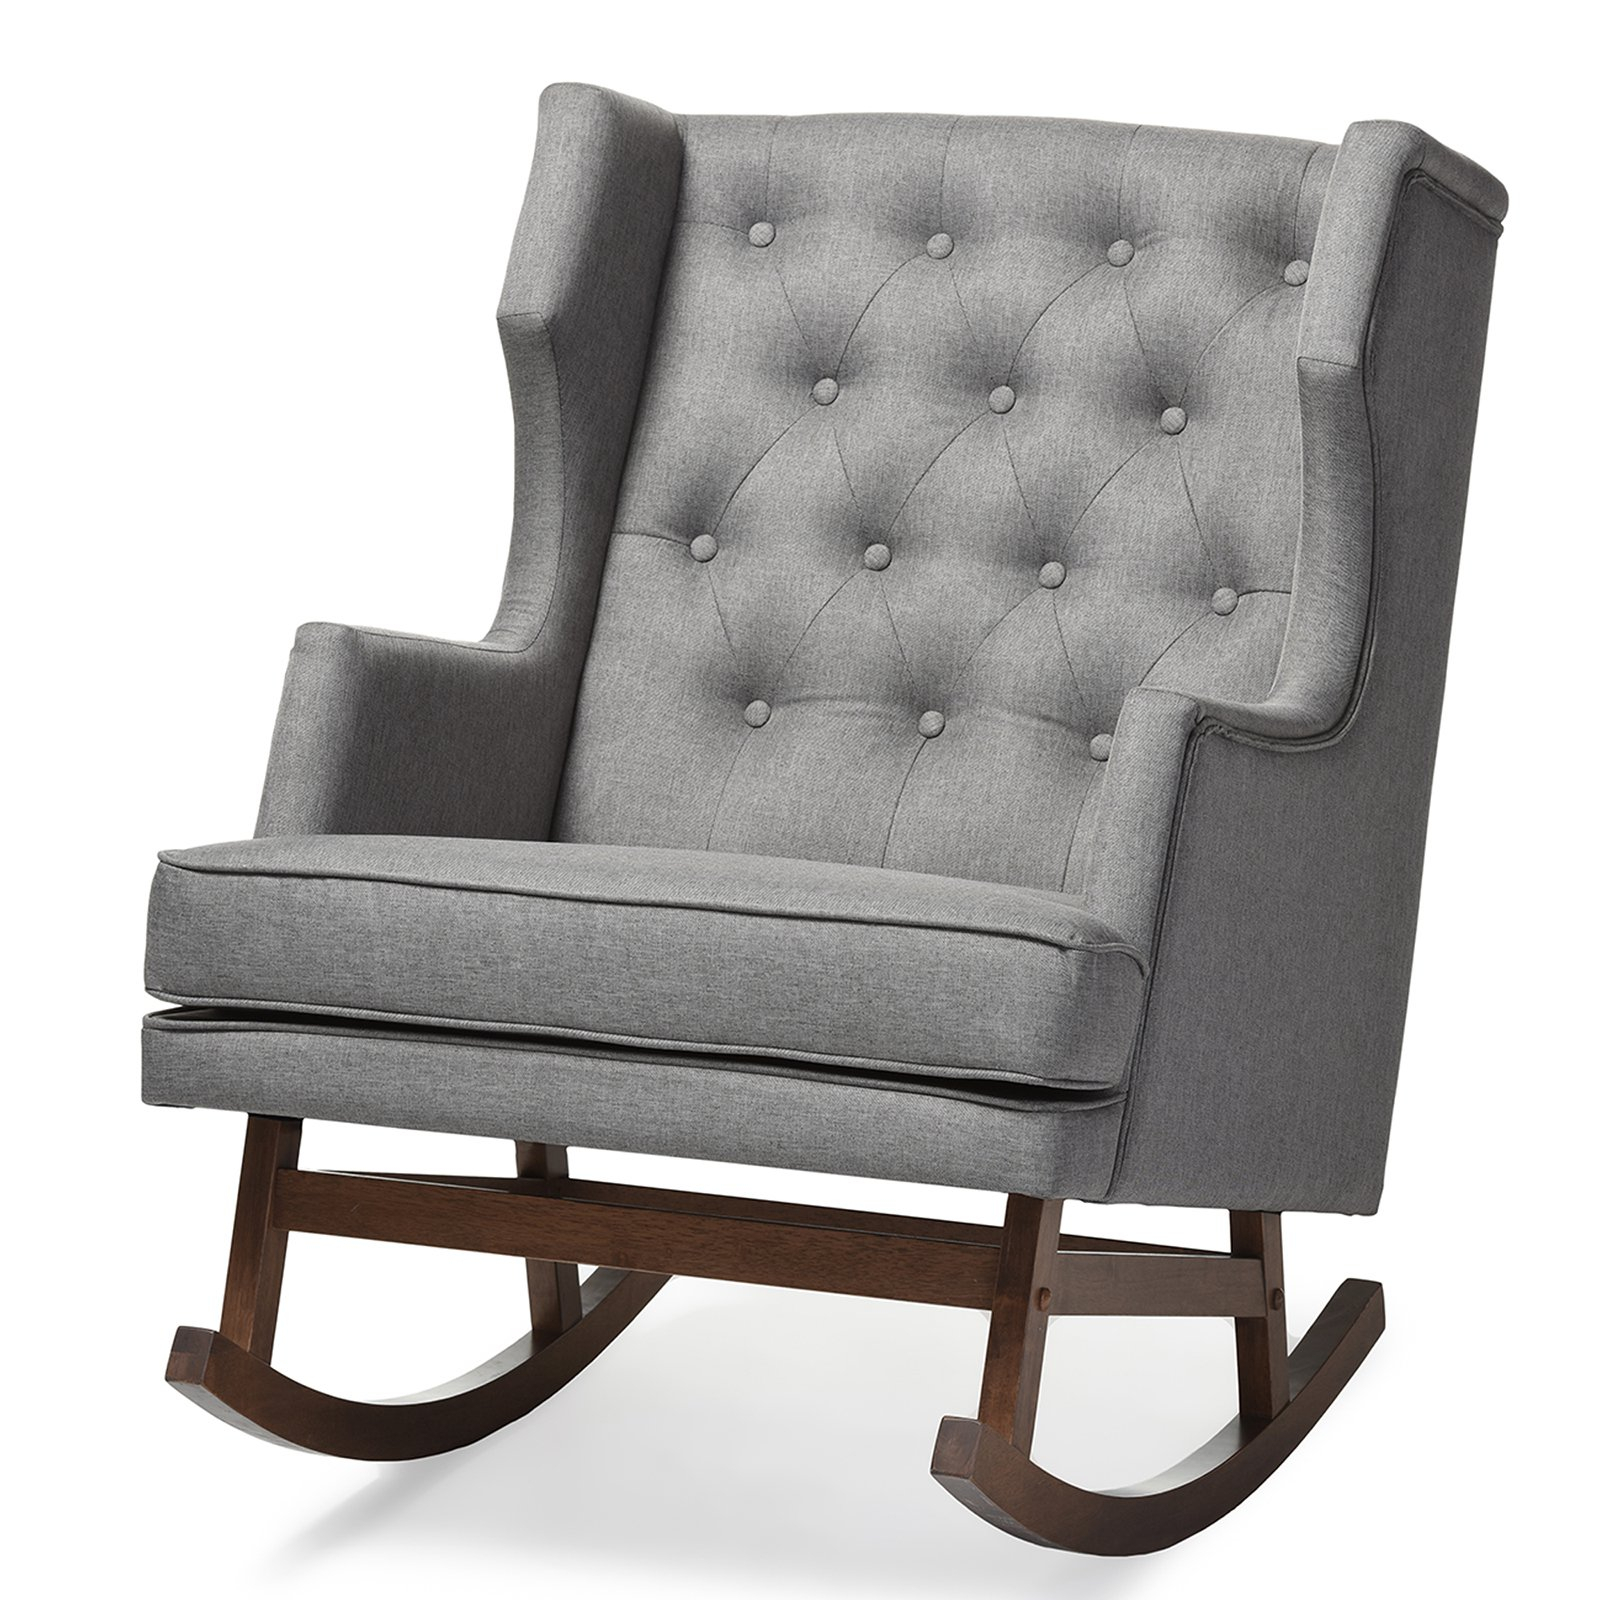 Baxton Studio Iona Mid Century Retro Modern Upholstered Button Tufted Wingback Rocking Chair, Multiple Colors With Regard To Mid Century Modern Fabric Rocking Chairs (View 14 of 20)